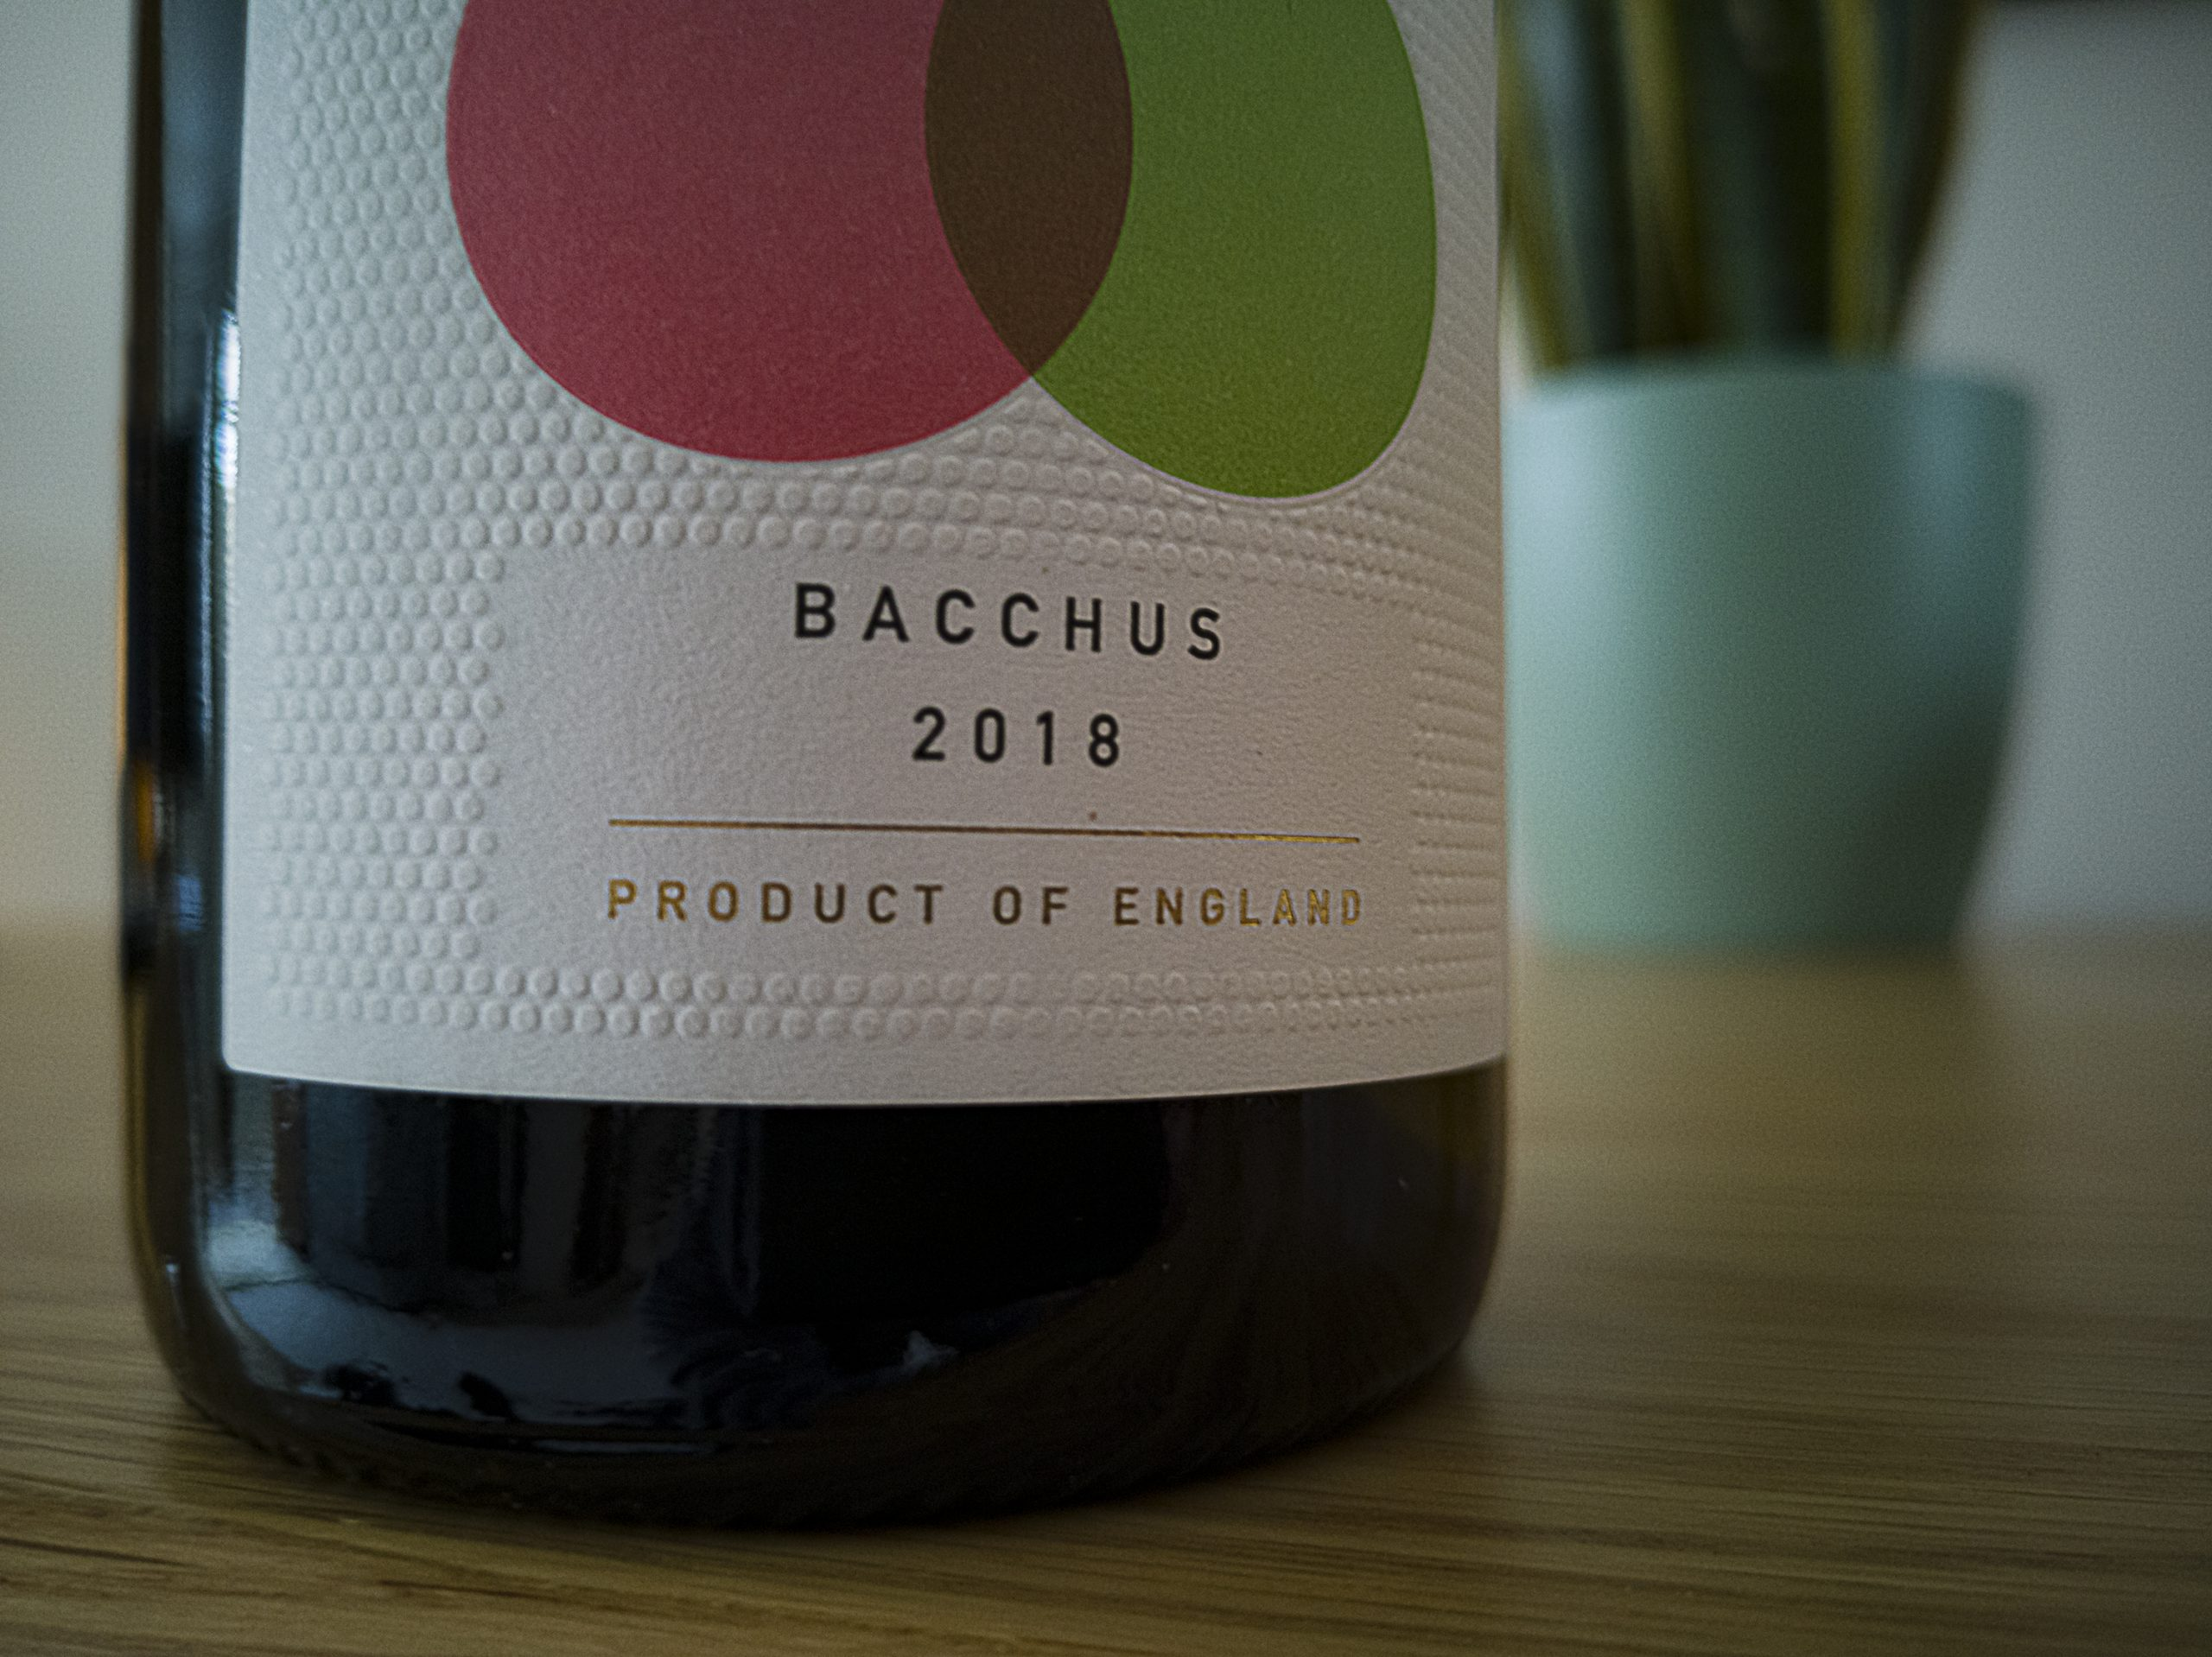 Bottle of Bacchus